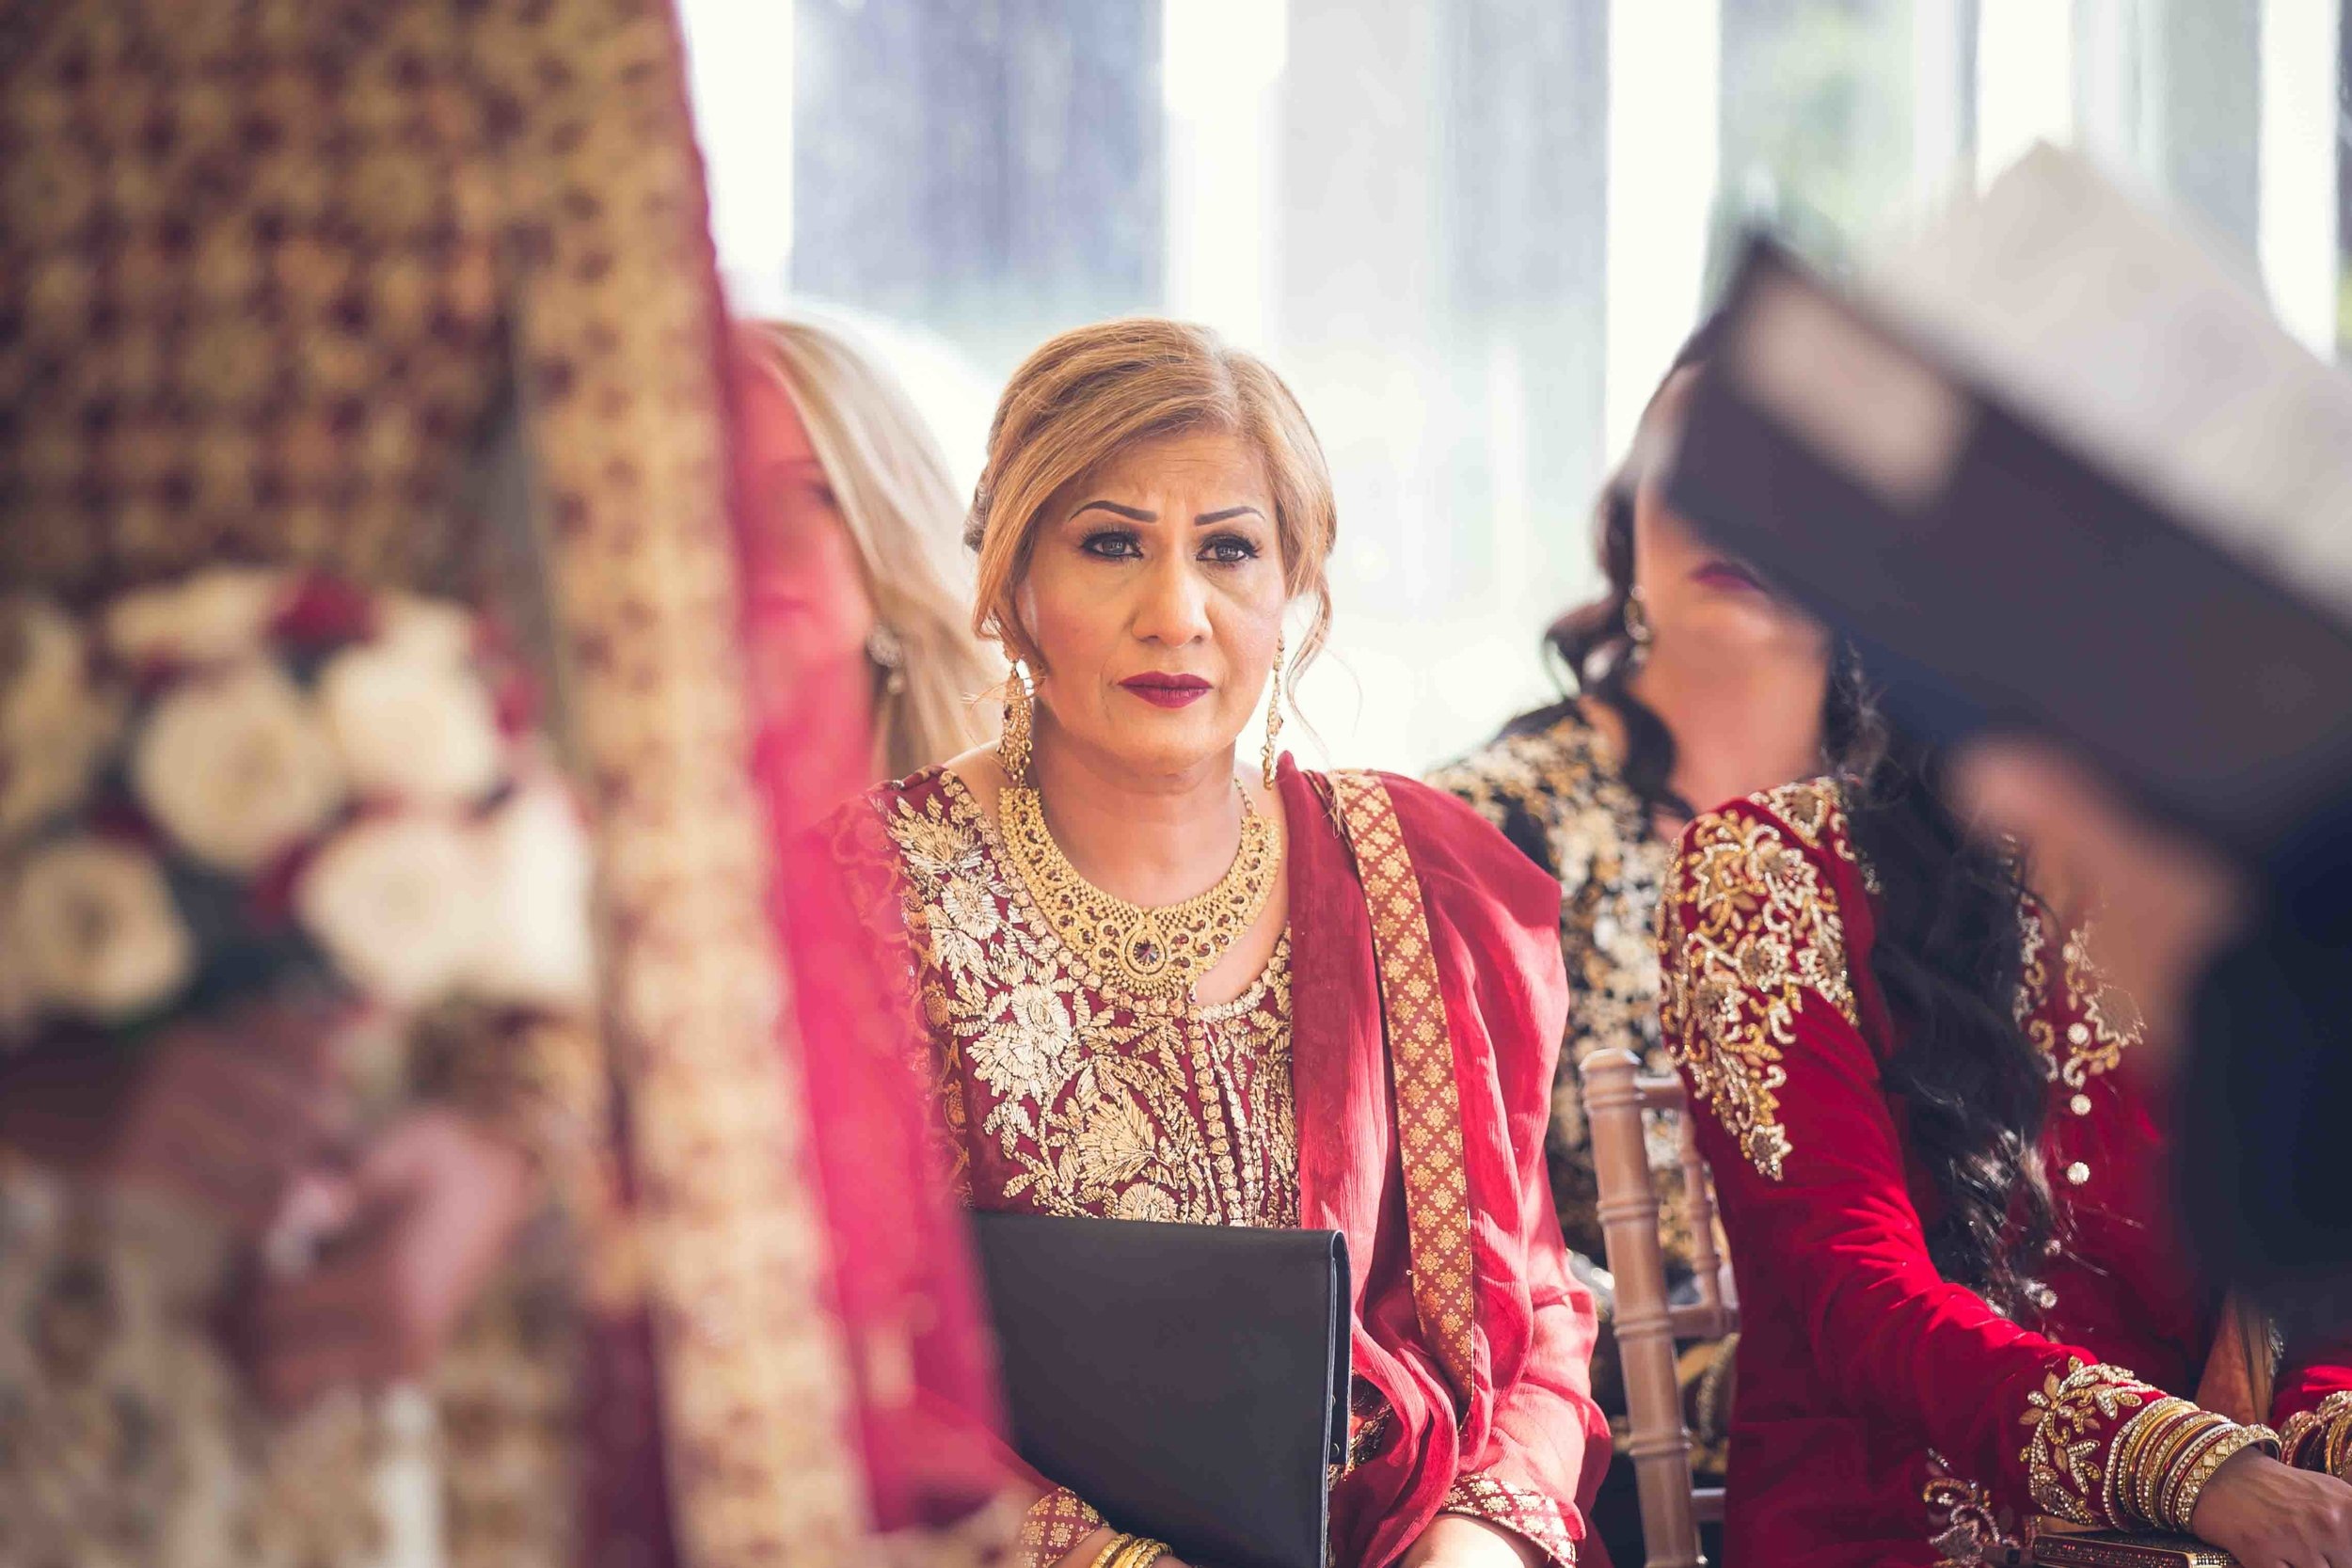 Asian Wedding Photographer Opu Sultan Photography Lyme Park Scotland Edinburgh Glasgow London Manchester Liverpool Birmingham Wedding Photos prewed shoot Azman & Saira Blog-69.jpg